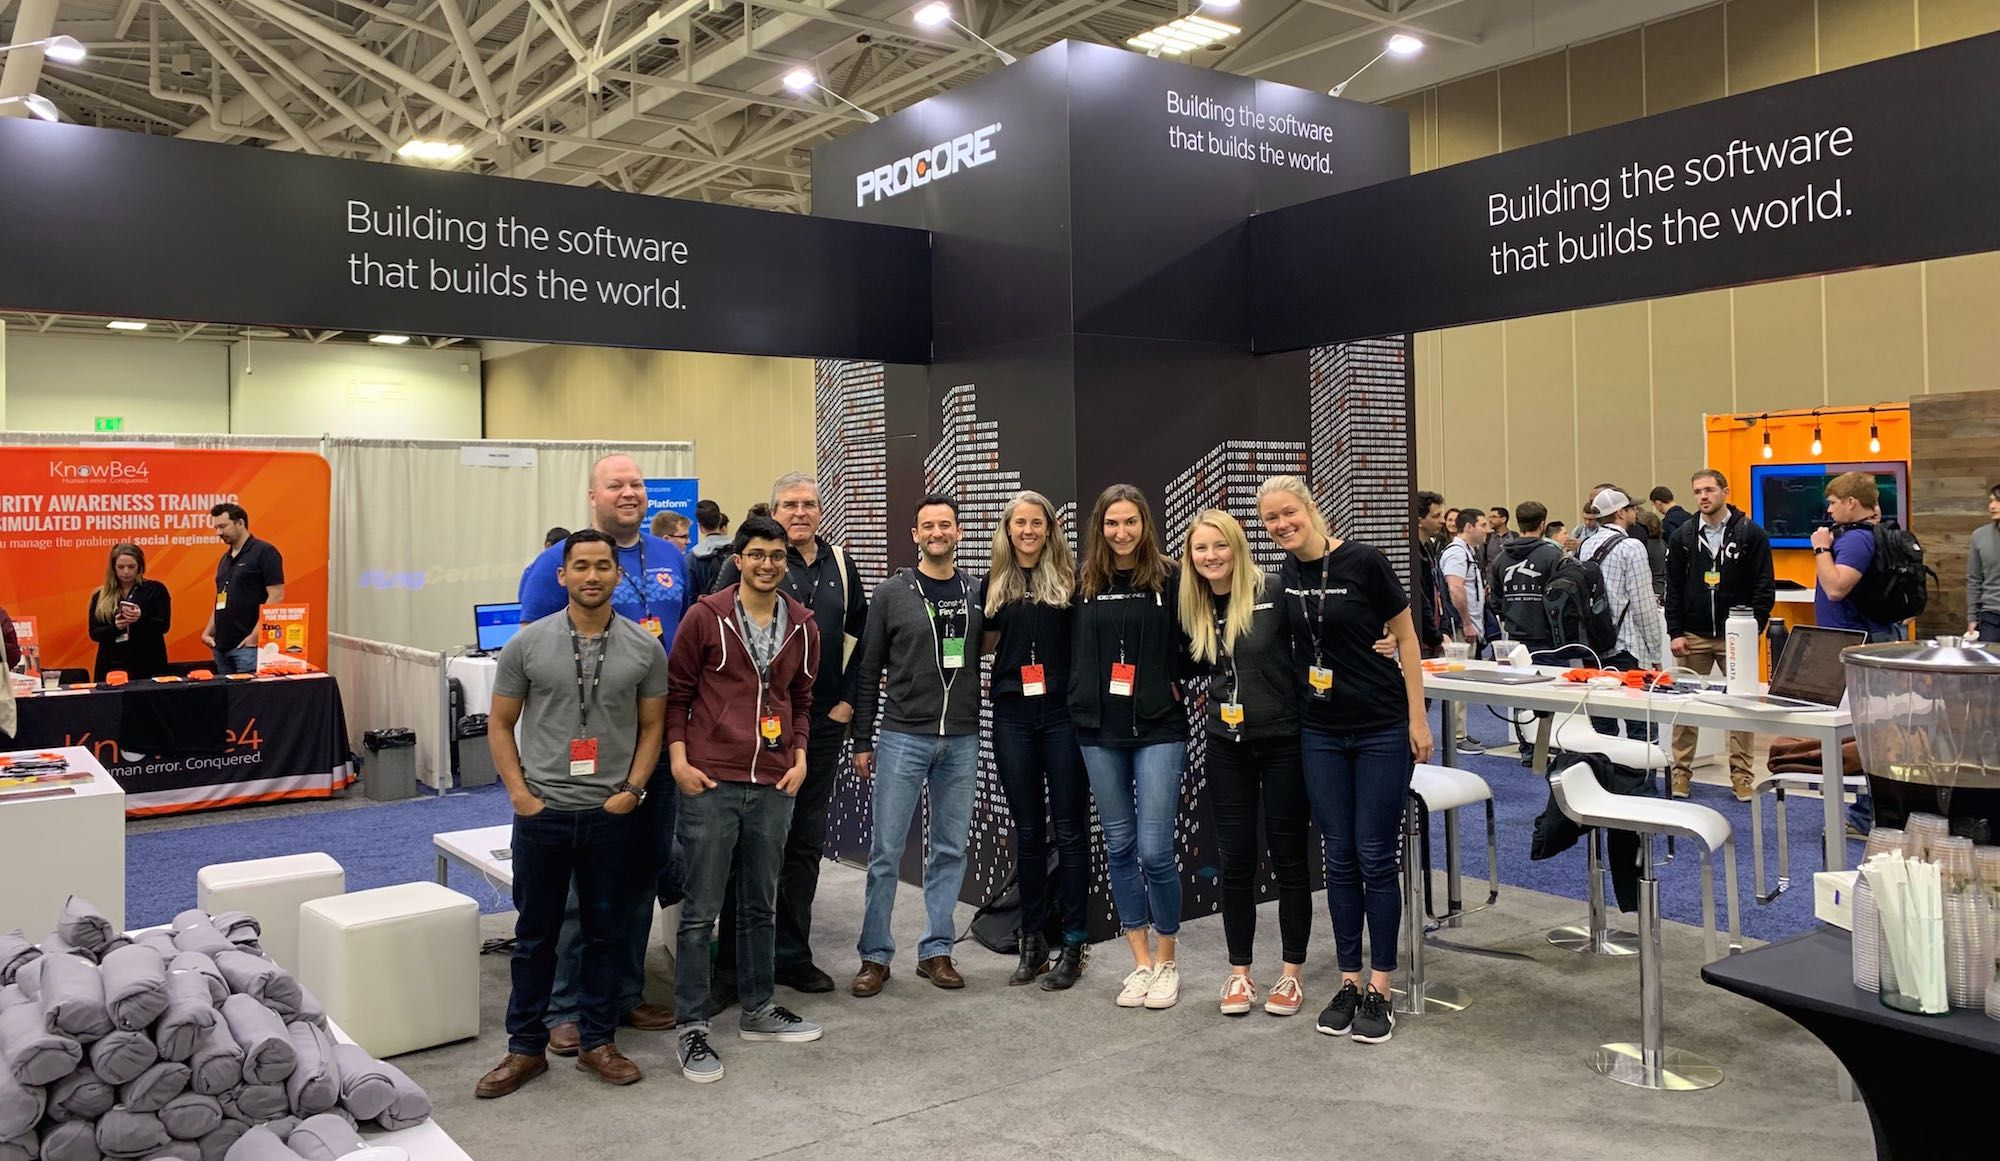 Procore speakers share highlights from RailsConf 2019